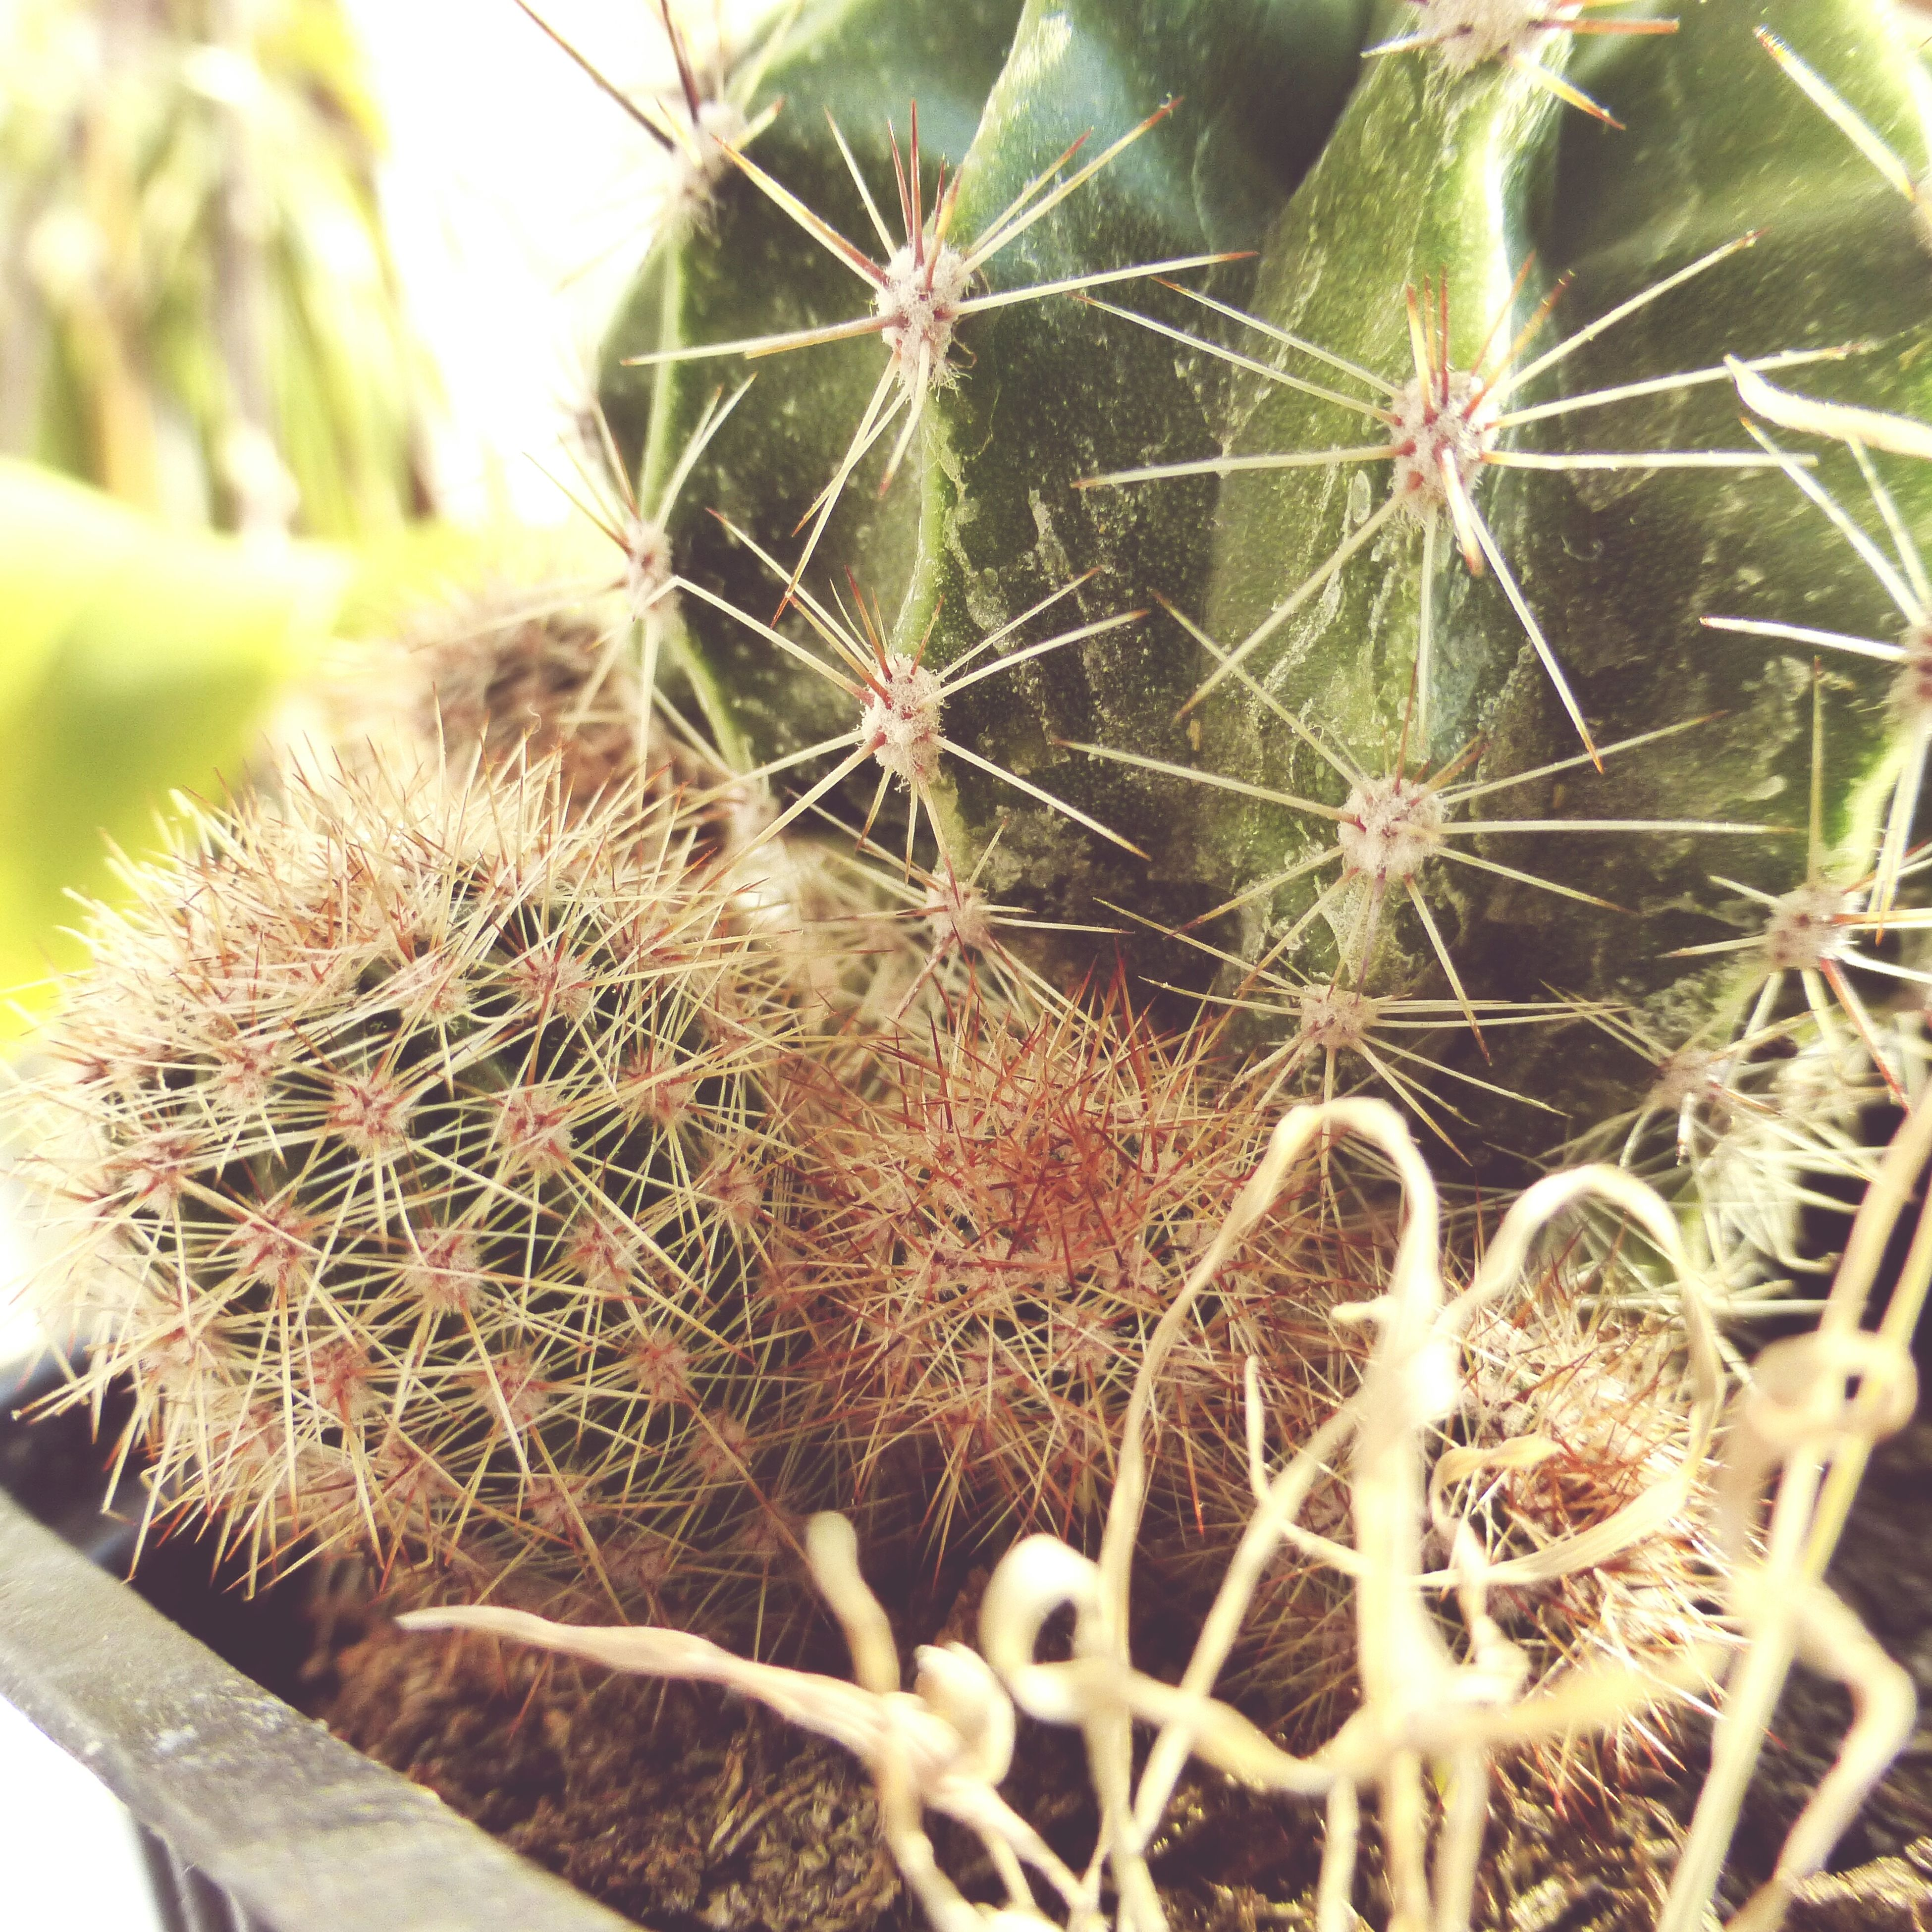 growth, cactus, thorn, plant, close-up, spiked, nature, freshness, beauty in nature, flower, sharp, focus on foreground, fragility, growing, day, succulent plant, outdoors, botany, green color, natural pattern, no people, uncultivated, stem, flower head, selective focus, seed, tranquility, detail, softness, backgrounds